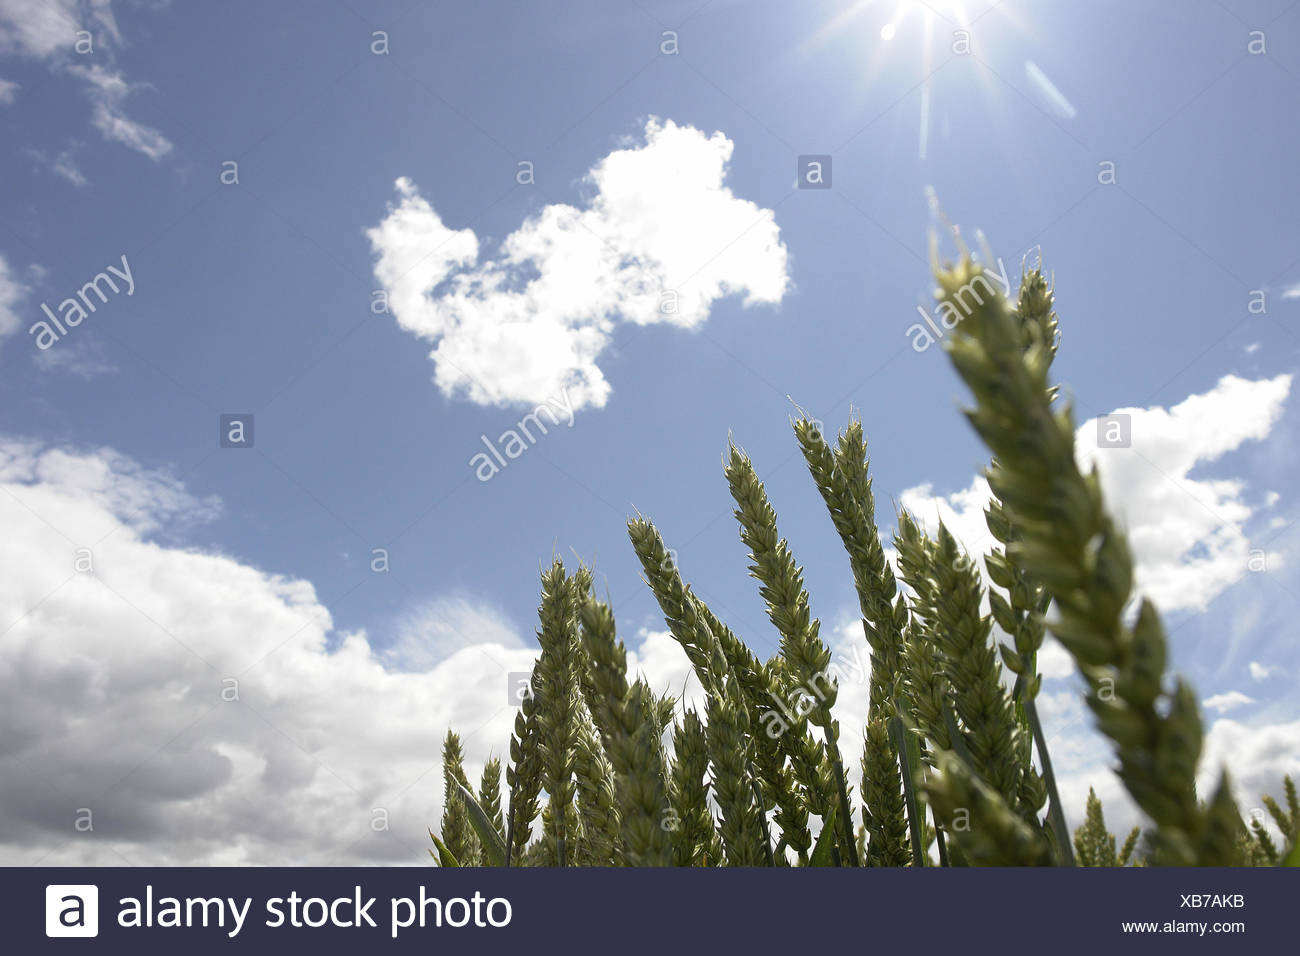 Grain Ears Sky The Sun Clouds Medium Close Up Detail Stock